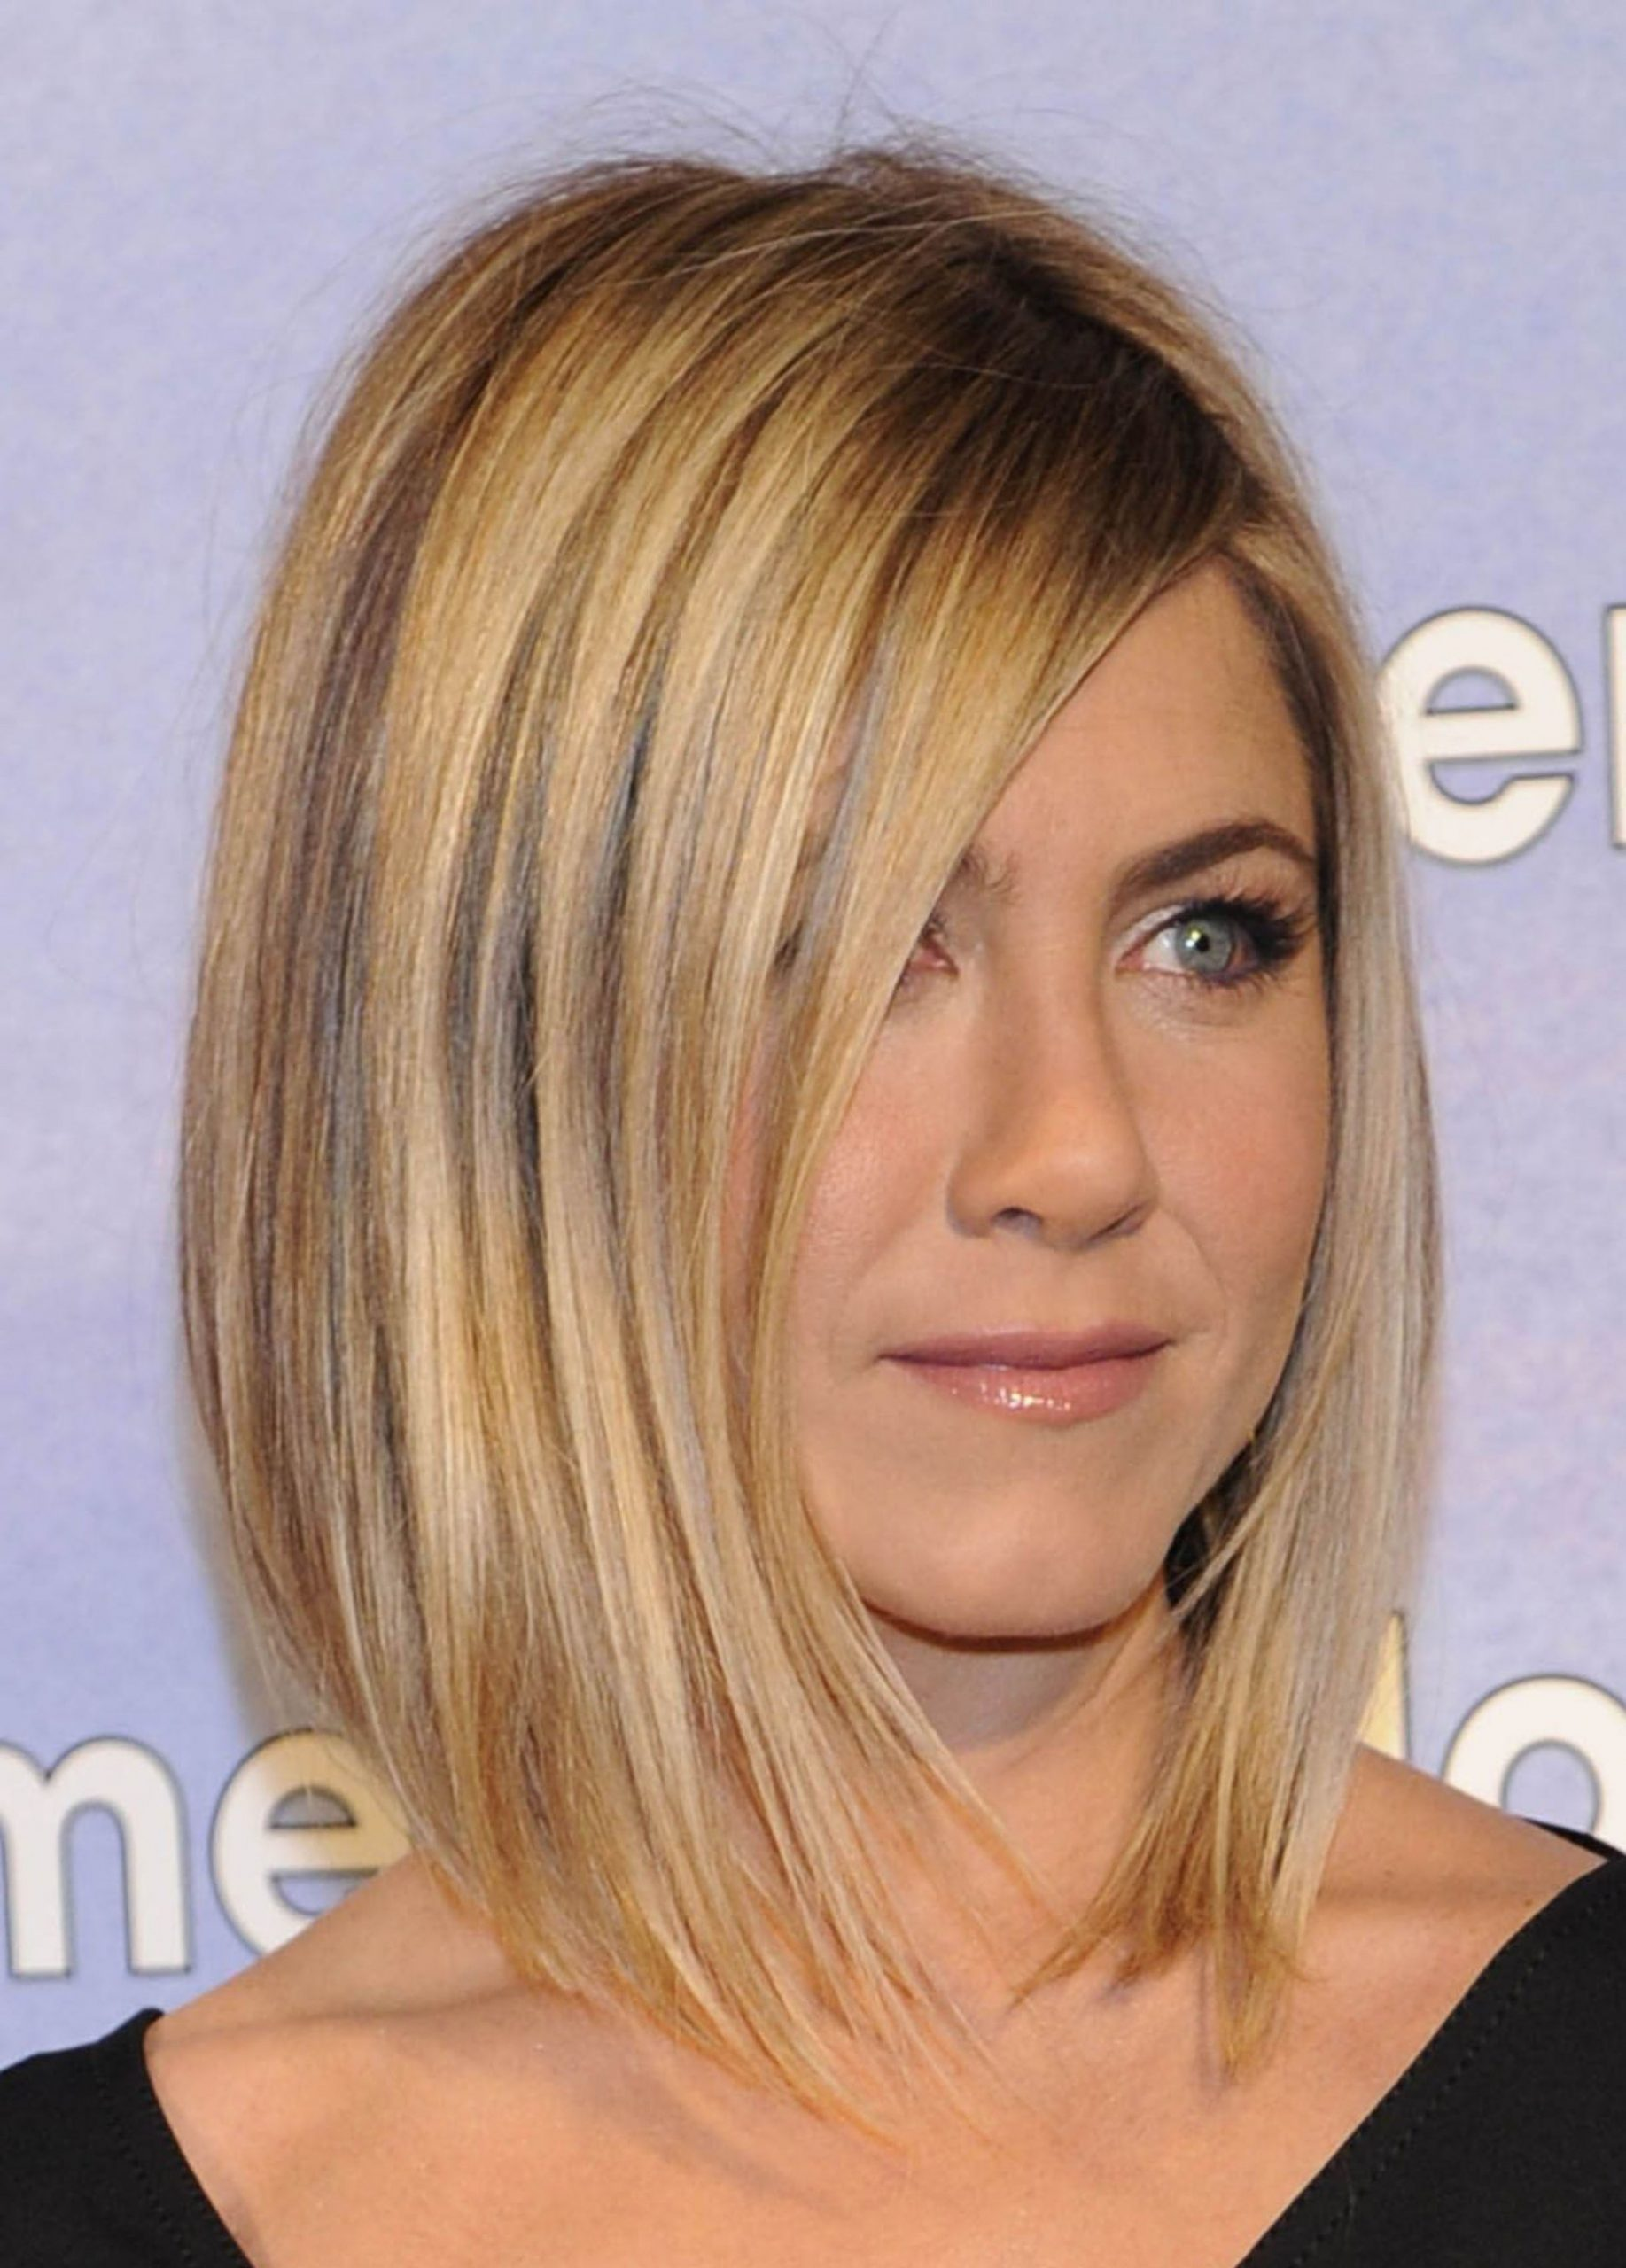 11 Best Lob Haircuts & Hairstyles How To Style Your Long Bob Straight Lob Haircut